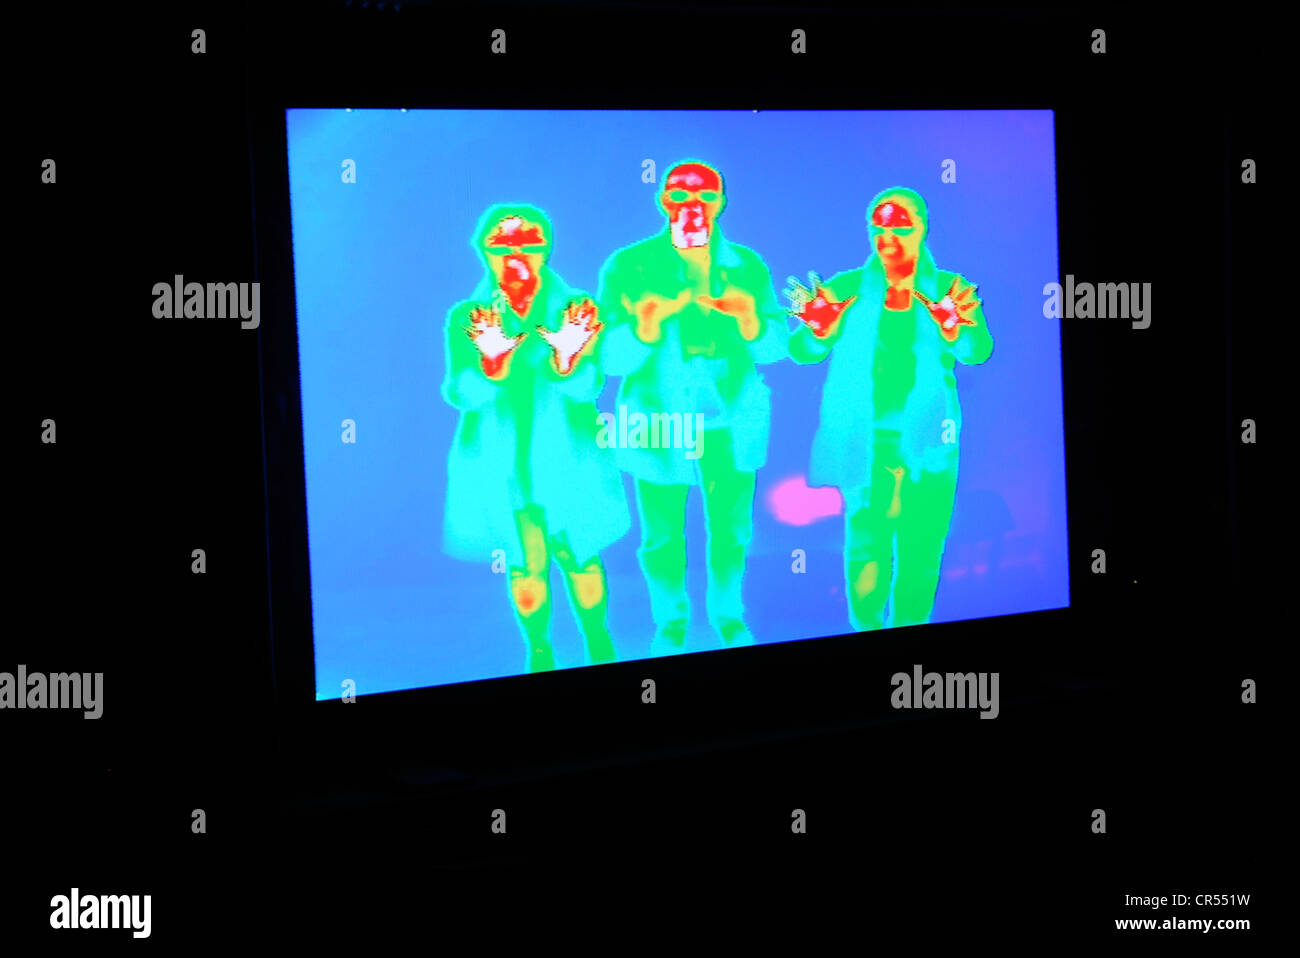 Thermographic image registers infrared heat signature.  Hotter areas appear red, cooler blue. - Stock Image